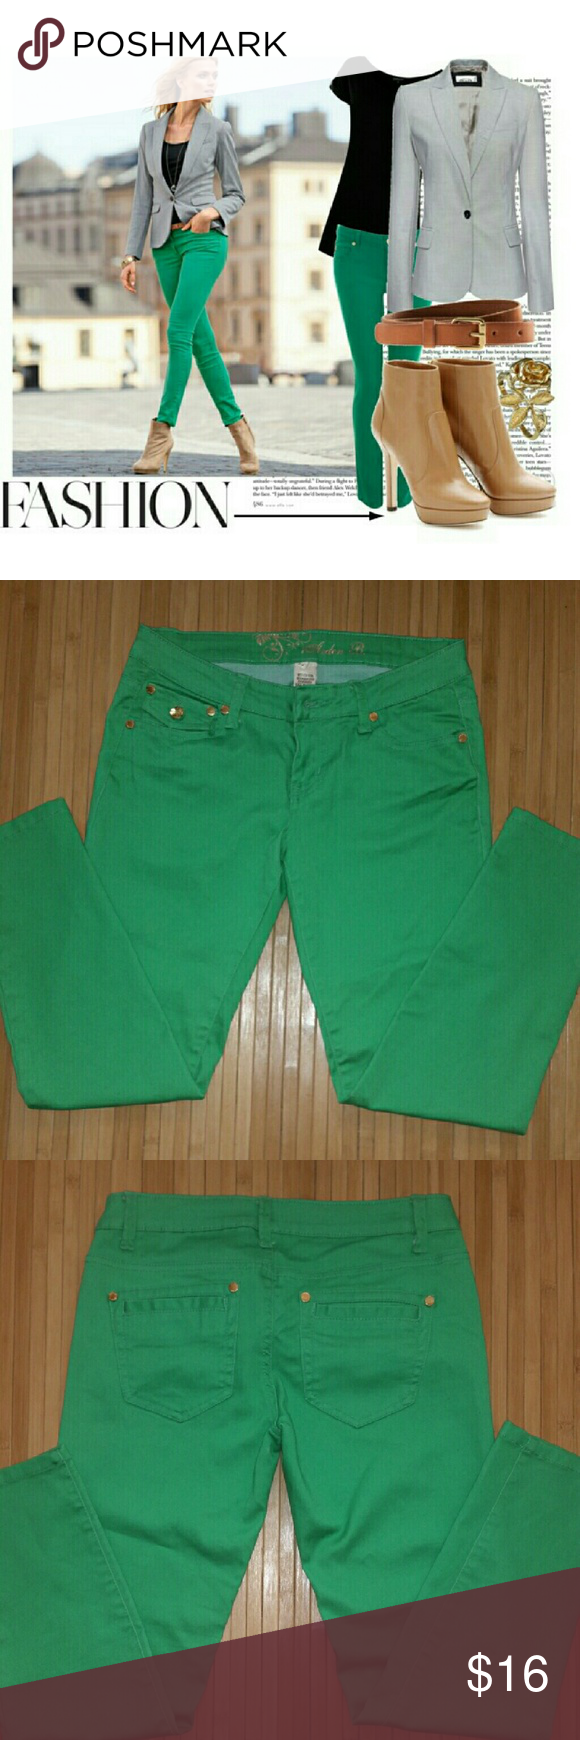 Go Green! Arden B Cropped Ankle Jeans. Pre-owned but well cared for. A definite wardrobe staple. Arden B Pants Ankle & Cropped